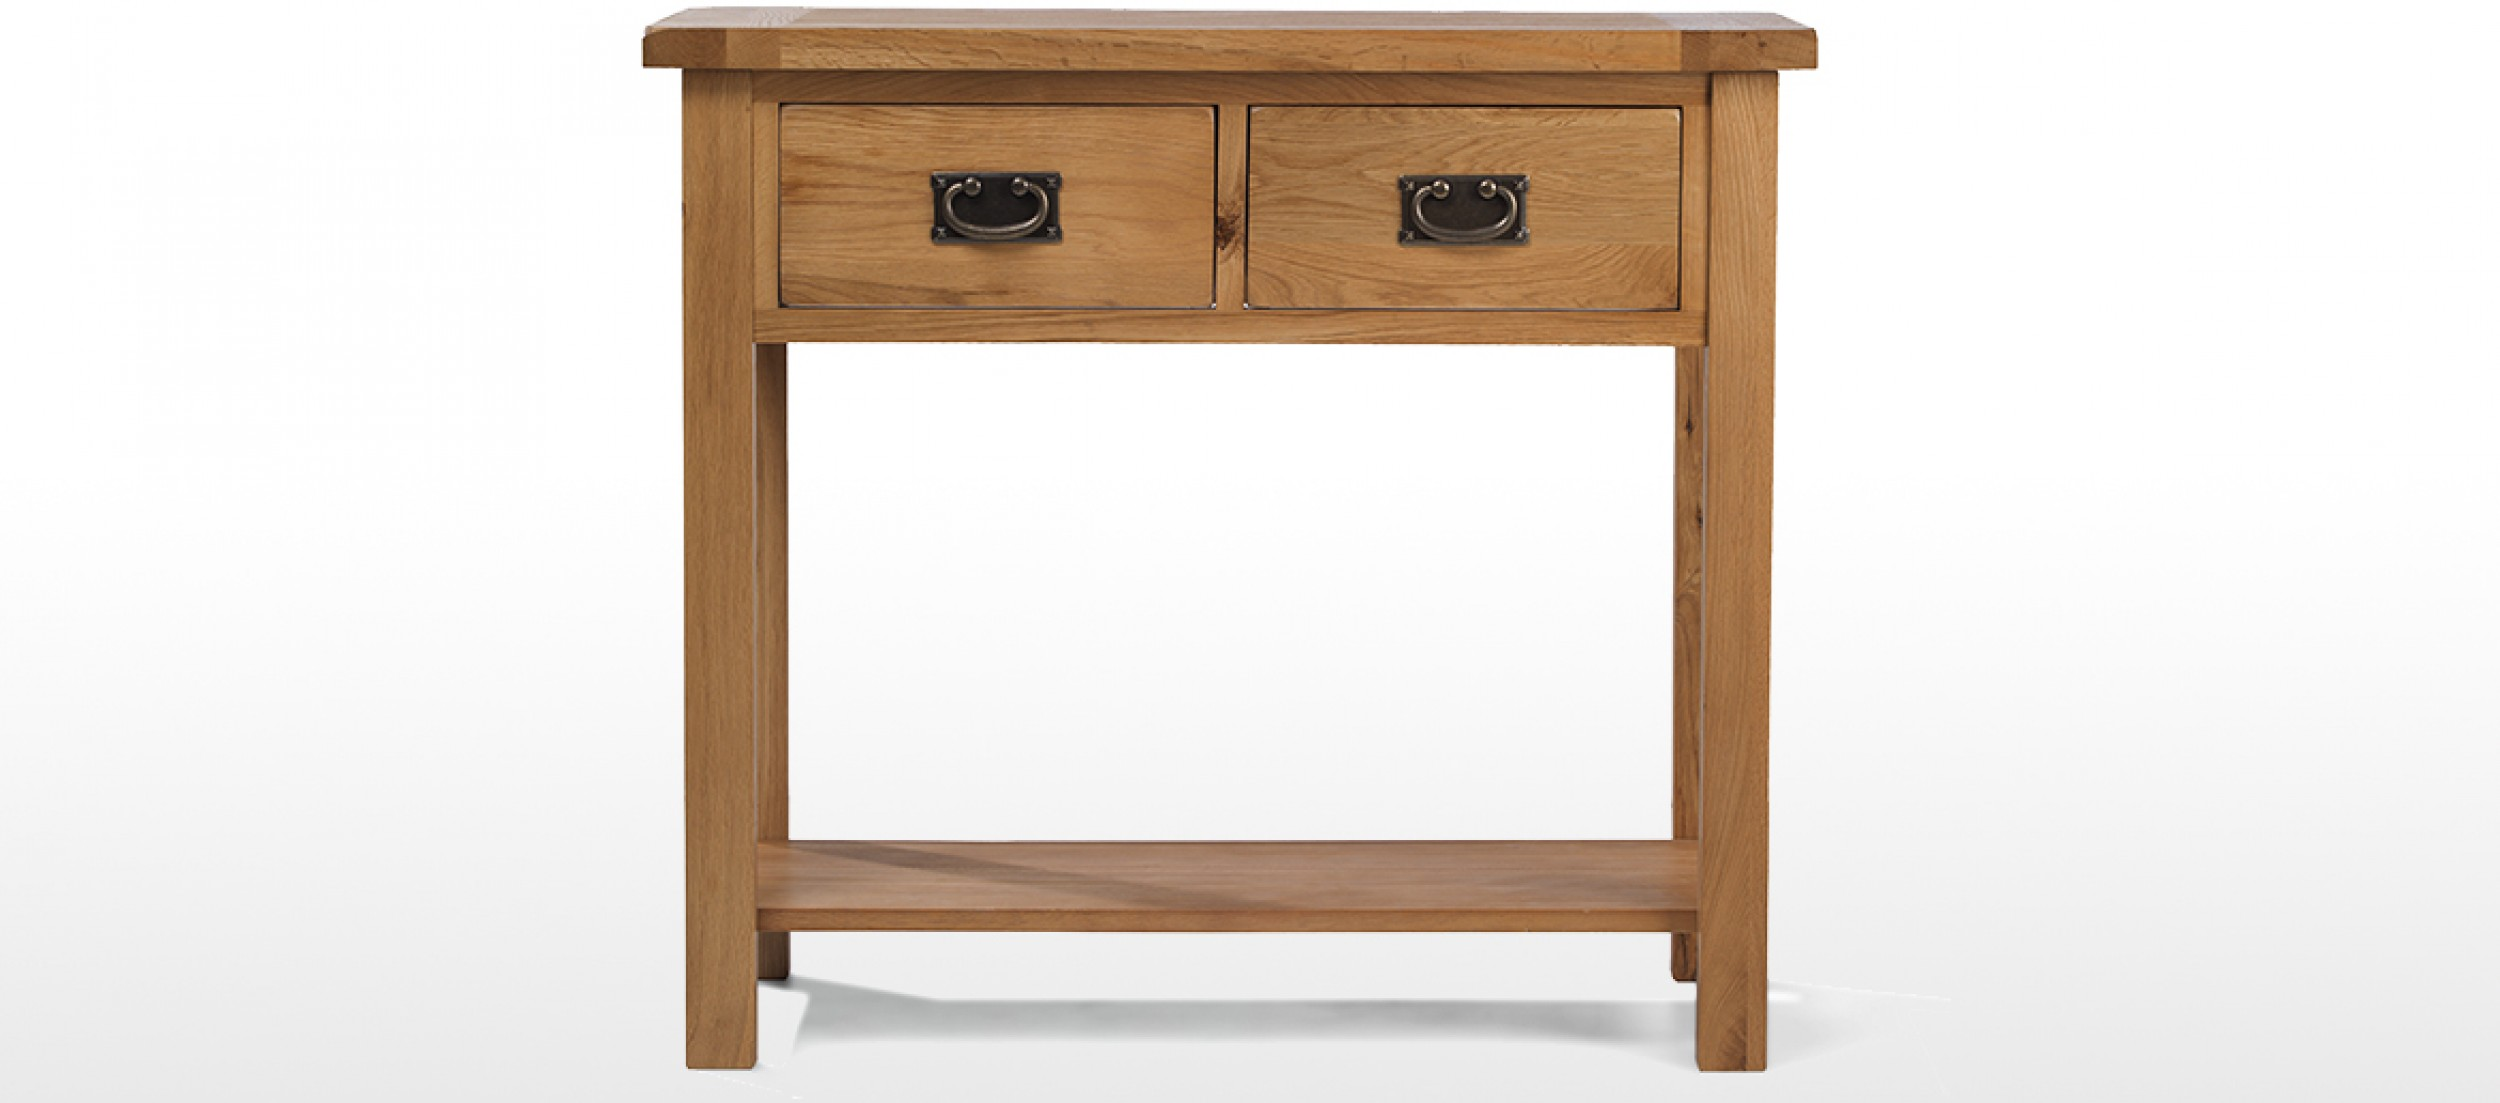 Rustic Oak Console Table Quercus Living